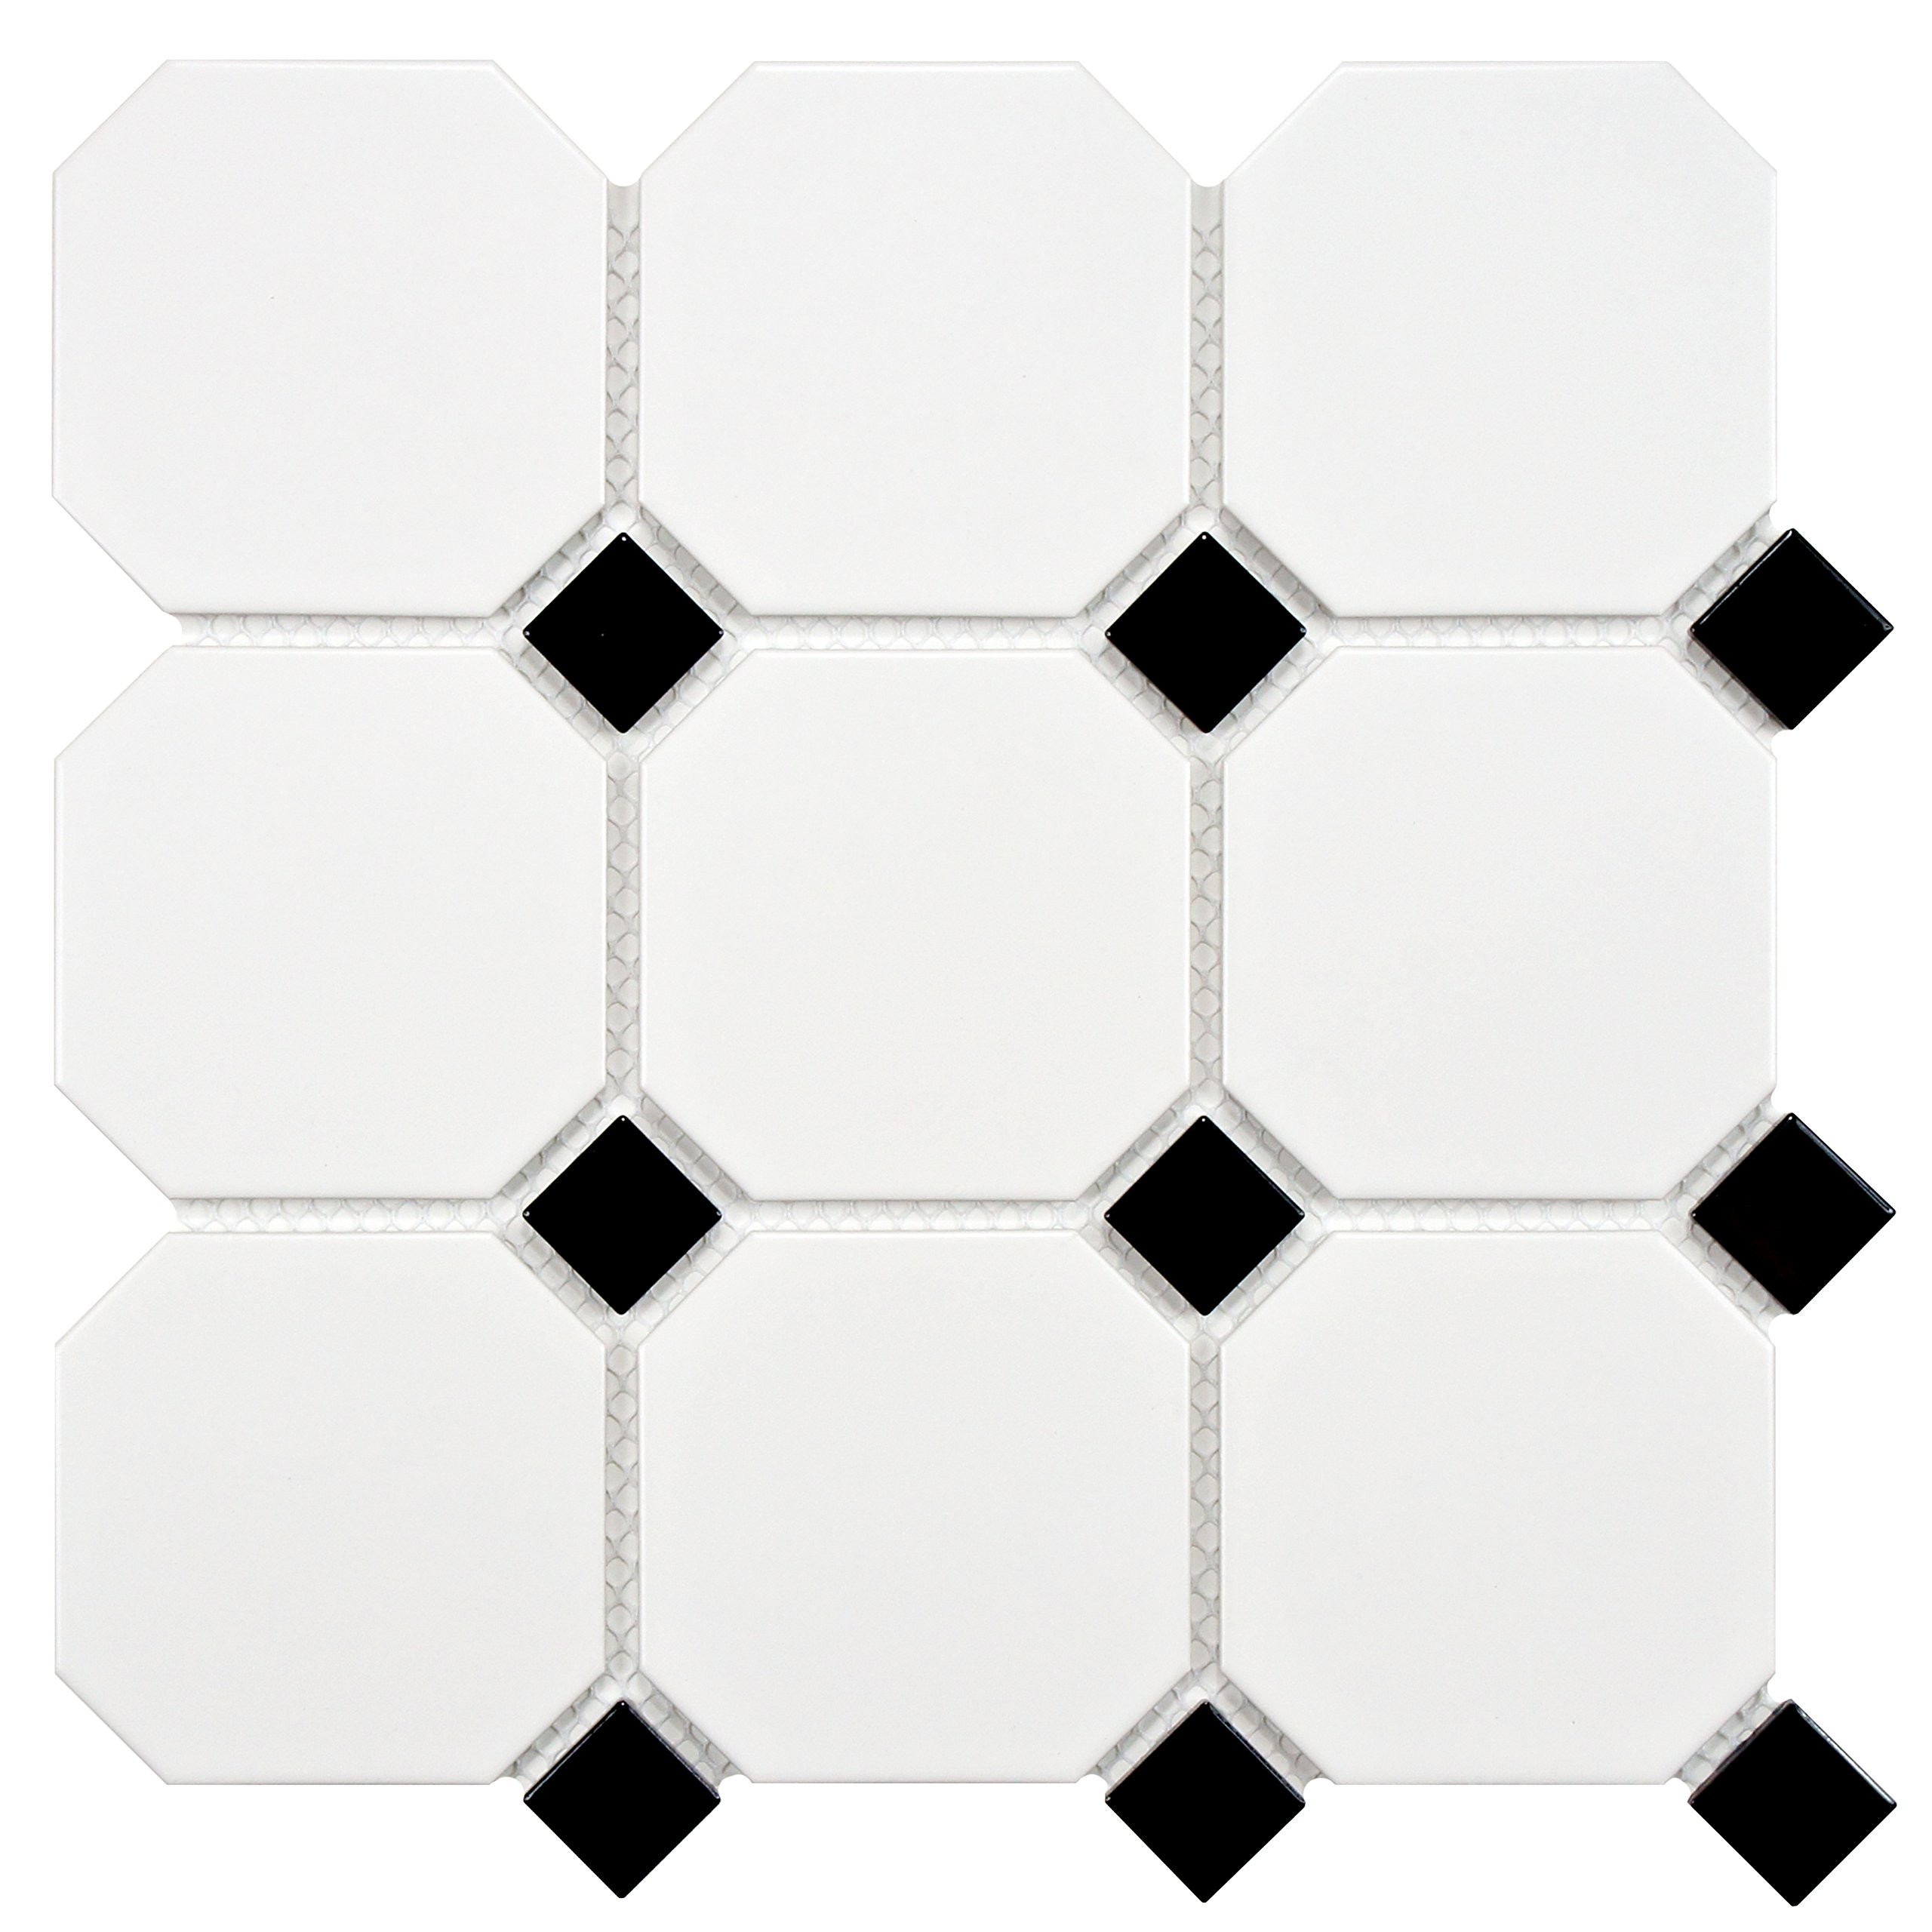 SomerTile FXLM4OWD Retro Super Octagon Porcelain Mosaic Floor and Wall Tile, 11.625'' x 11.625'', Matte White with Dot